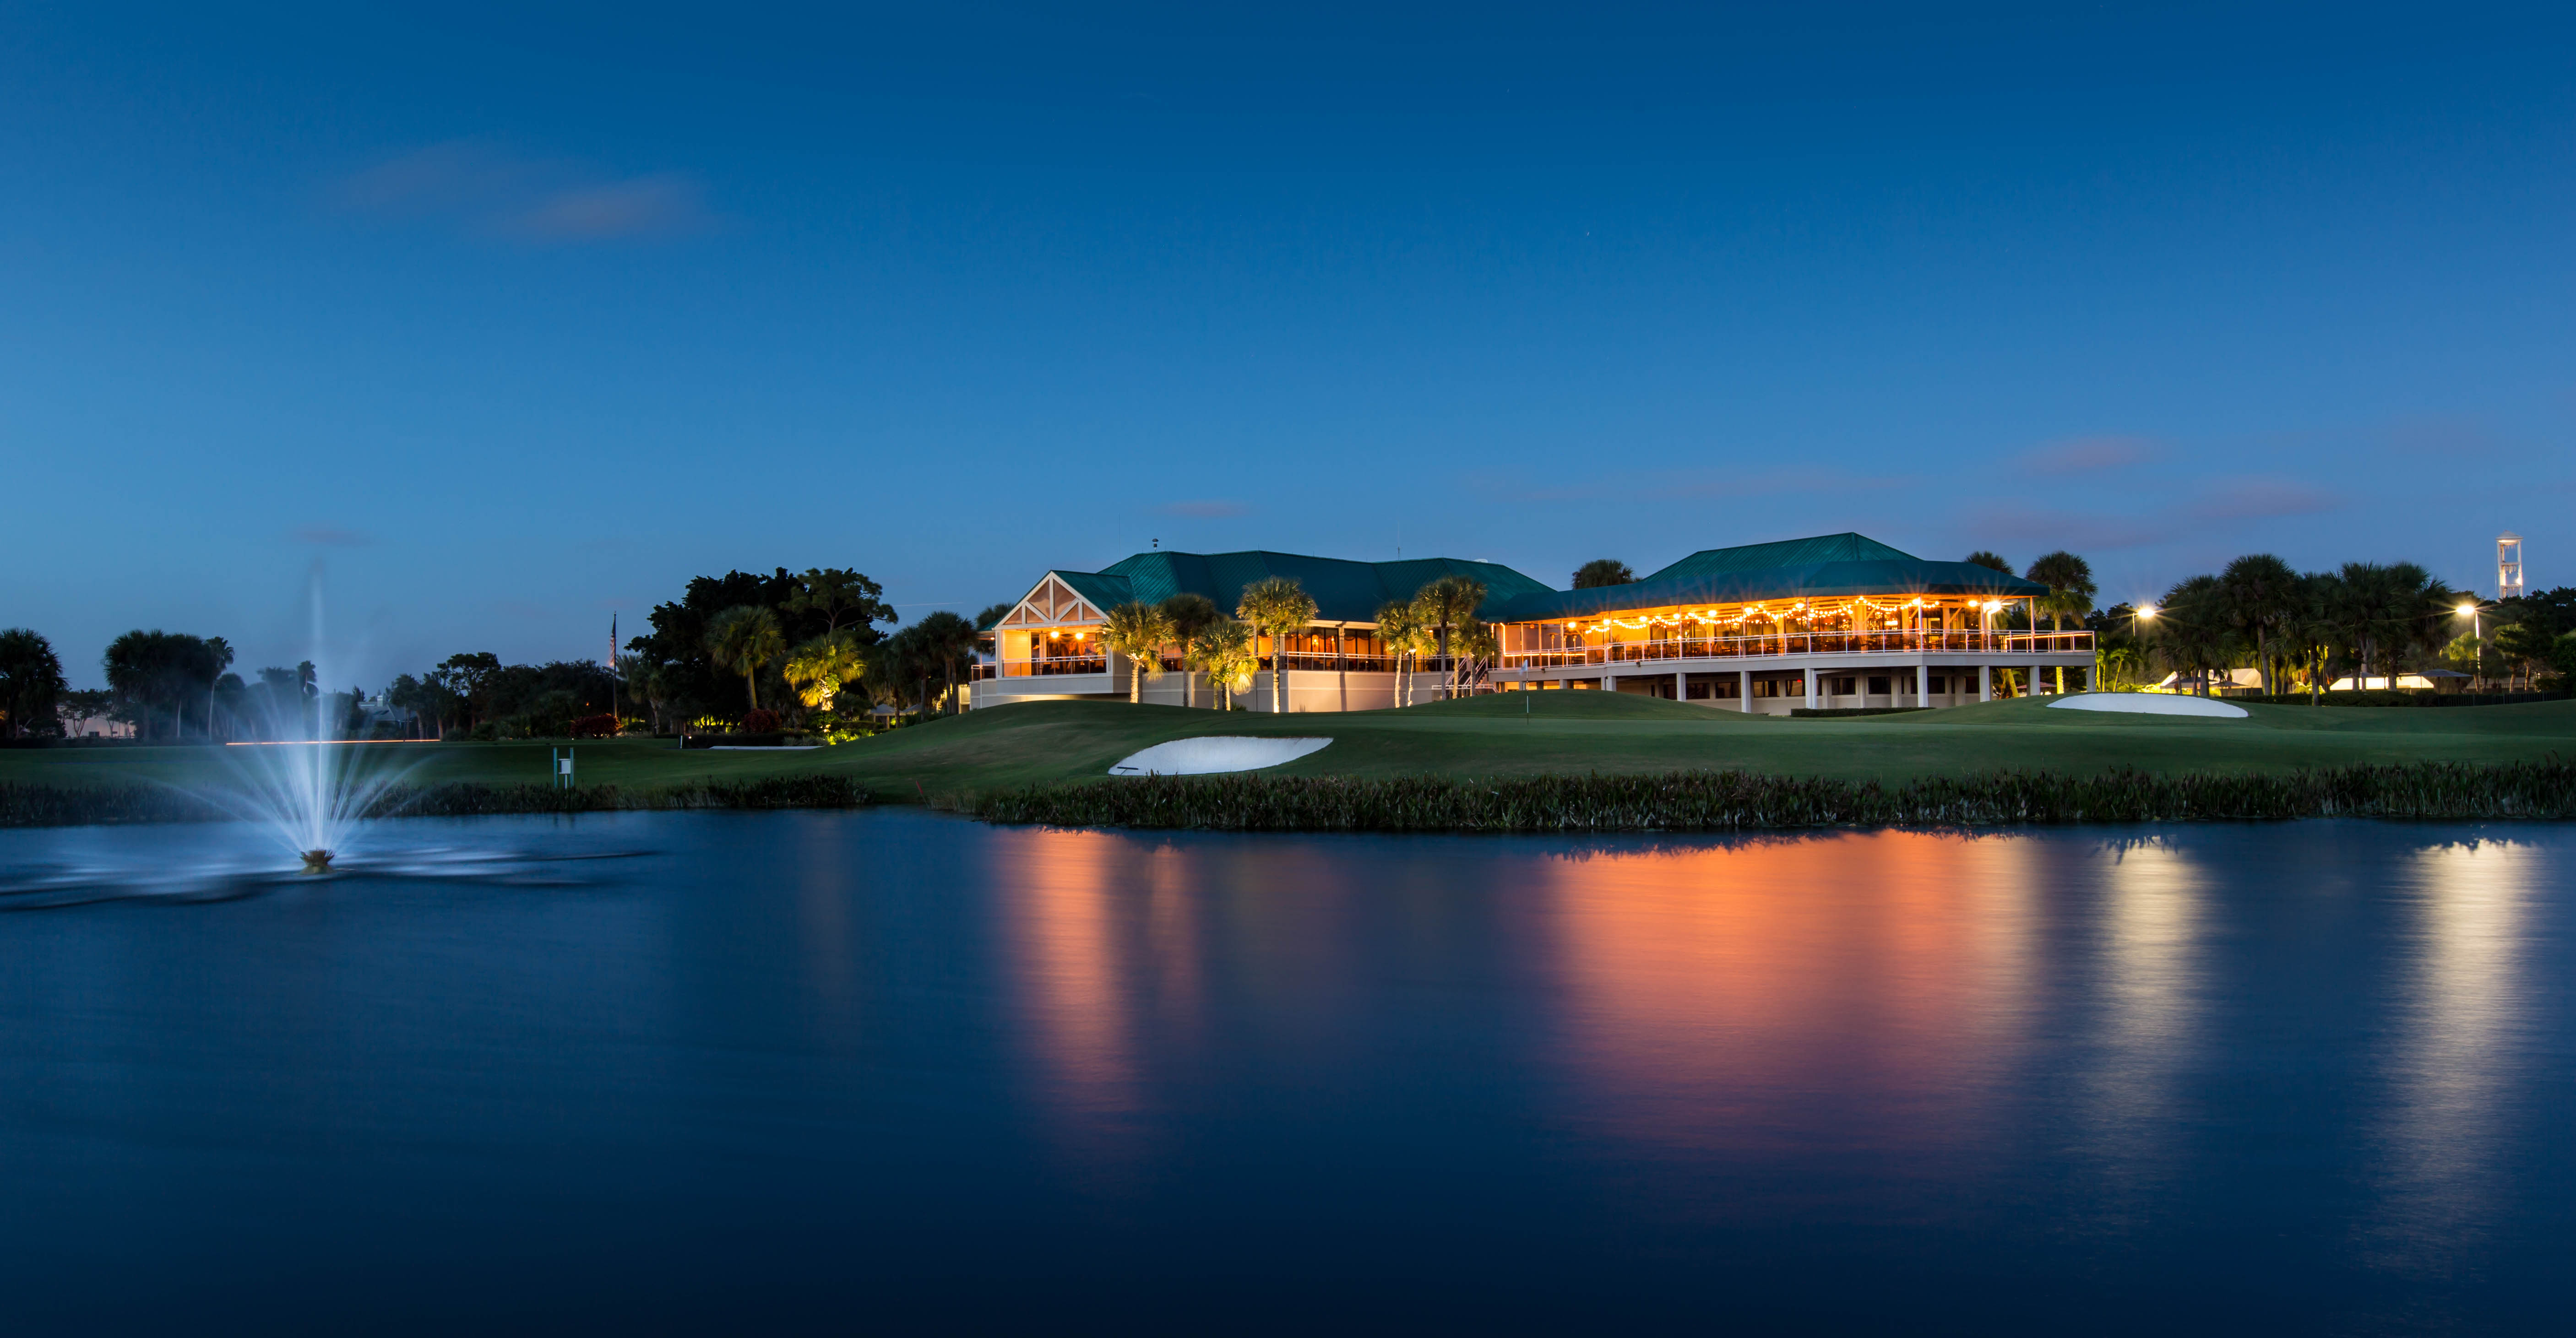 COUNTRY CLUB IN PALM BEACH FLORIDA - http://preserveatironhorse.com/country-club-palm-beach-florida/